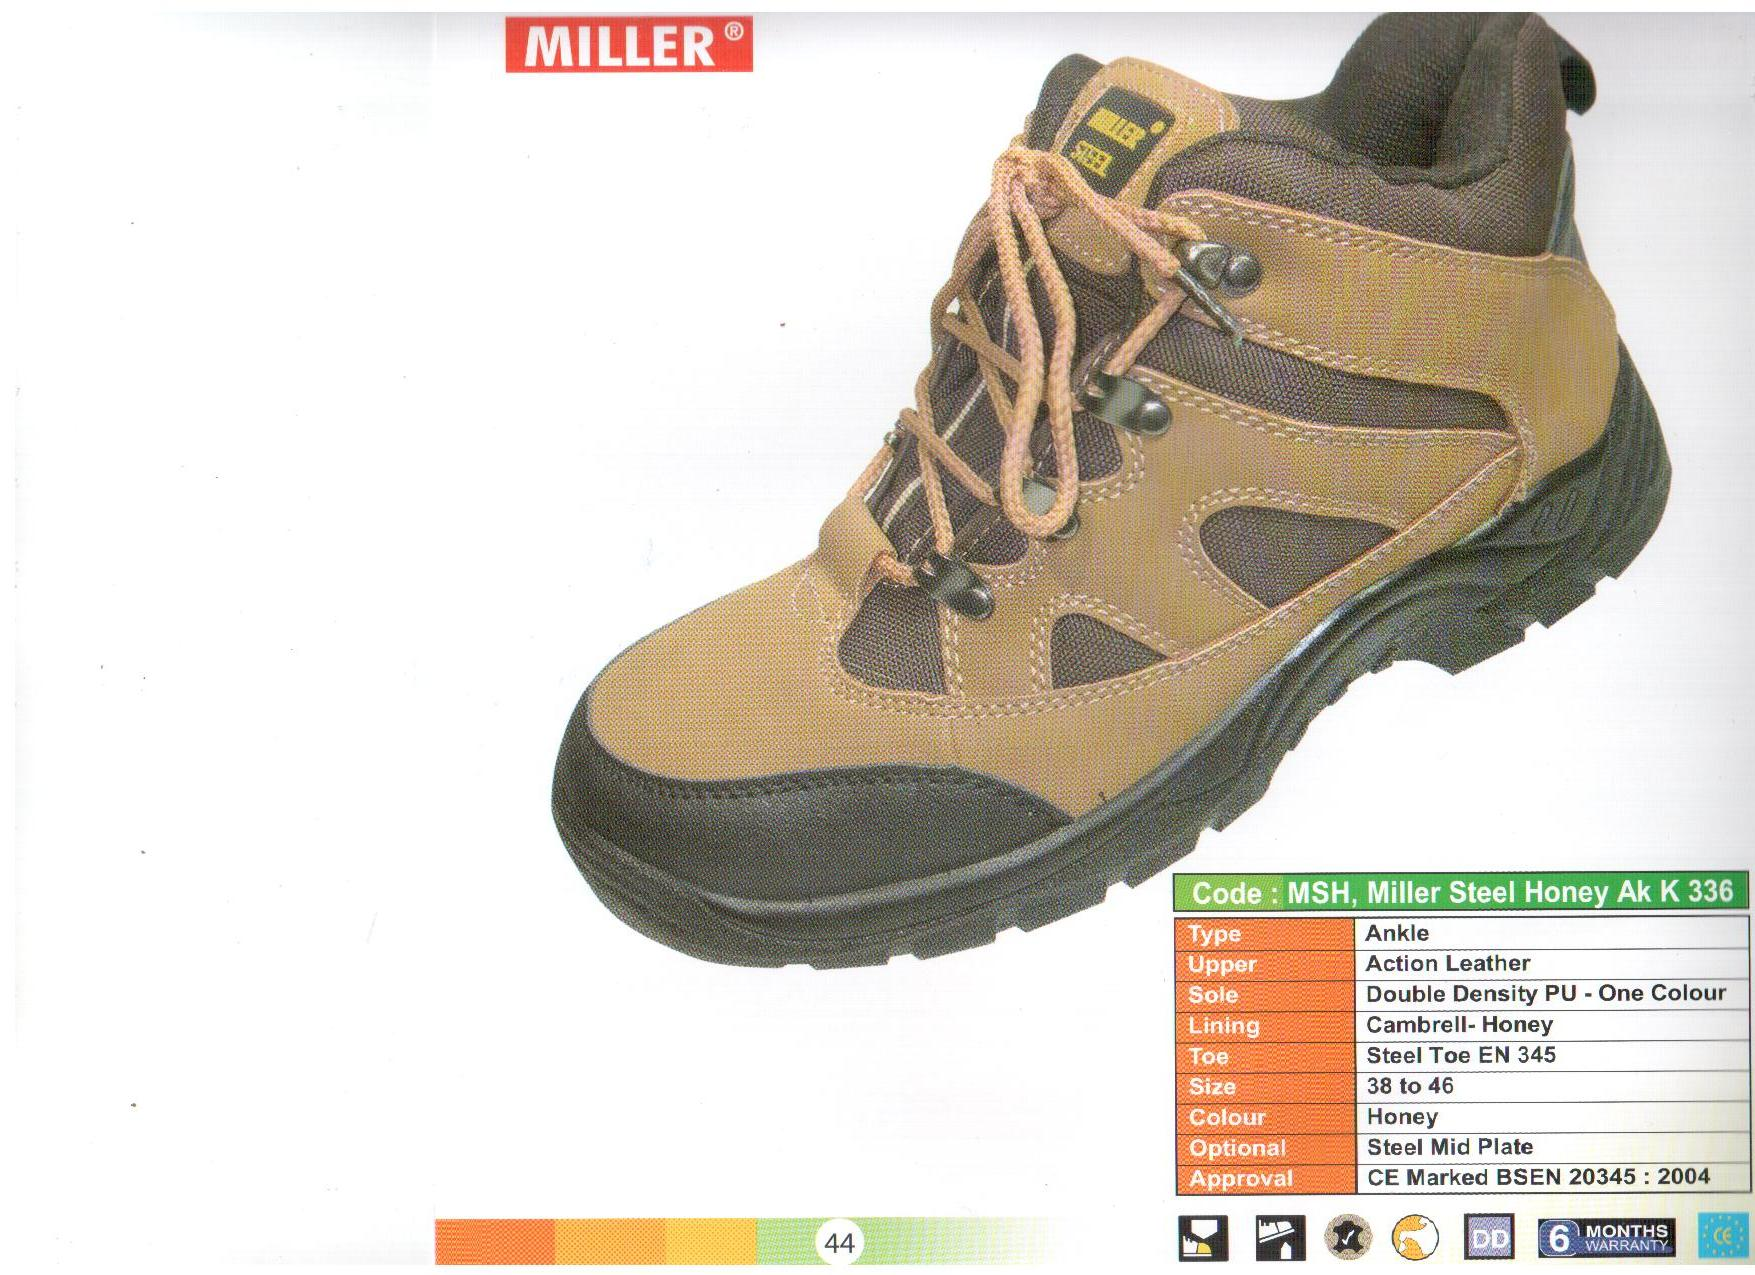 b2c5ca0e937 Safety shoes,leather upper, steel toe, PU injection sole, oil and ...